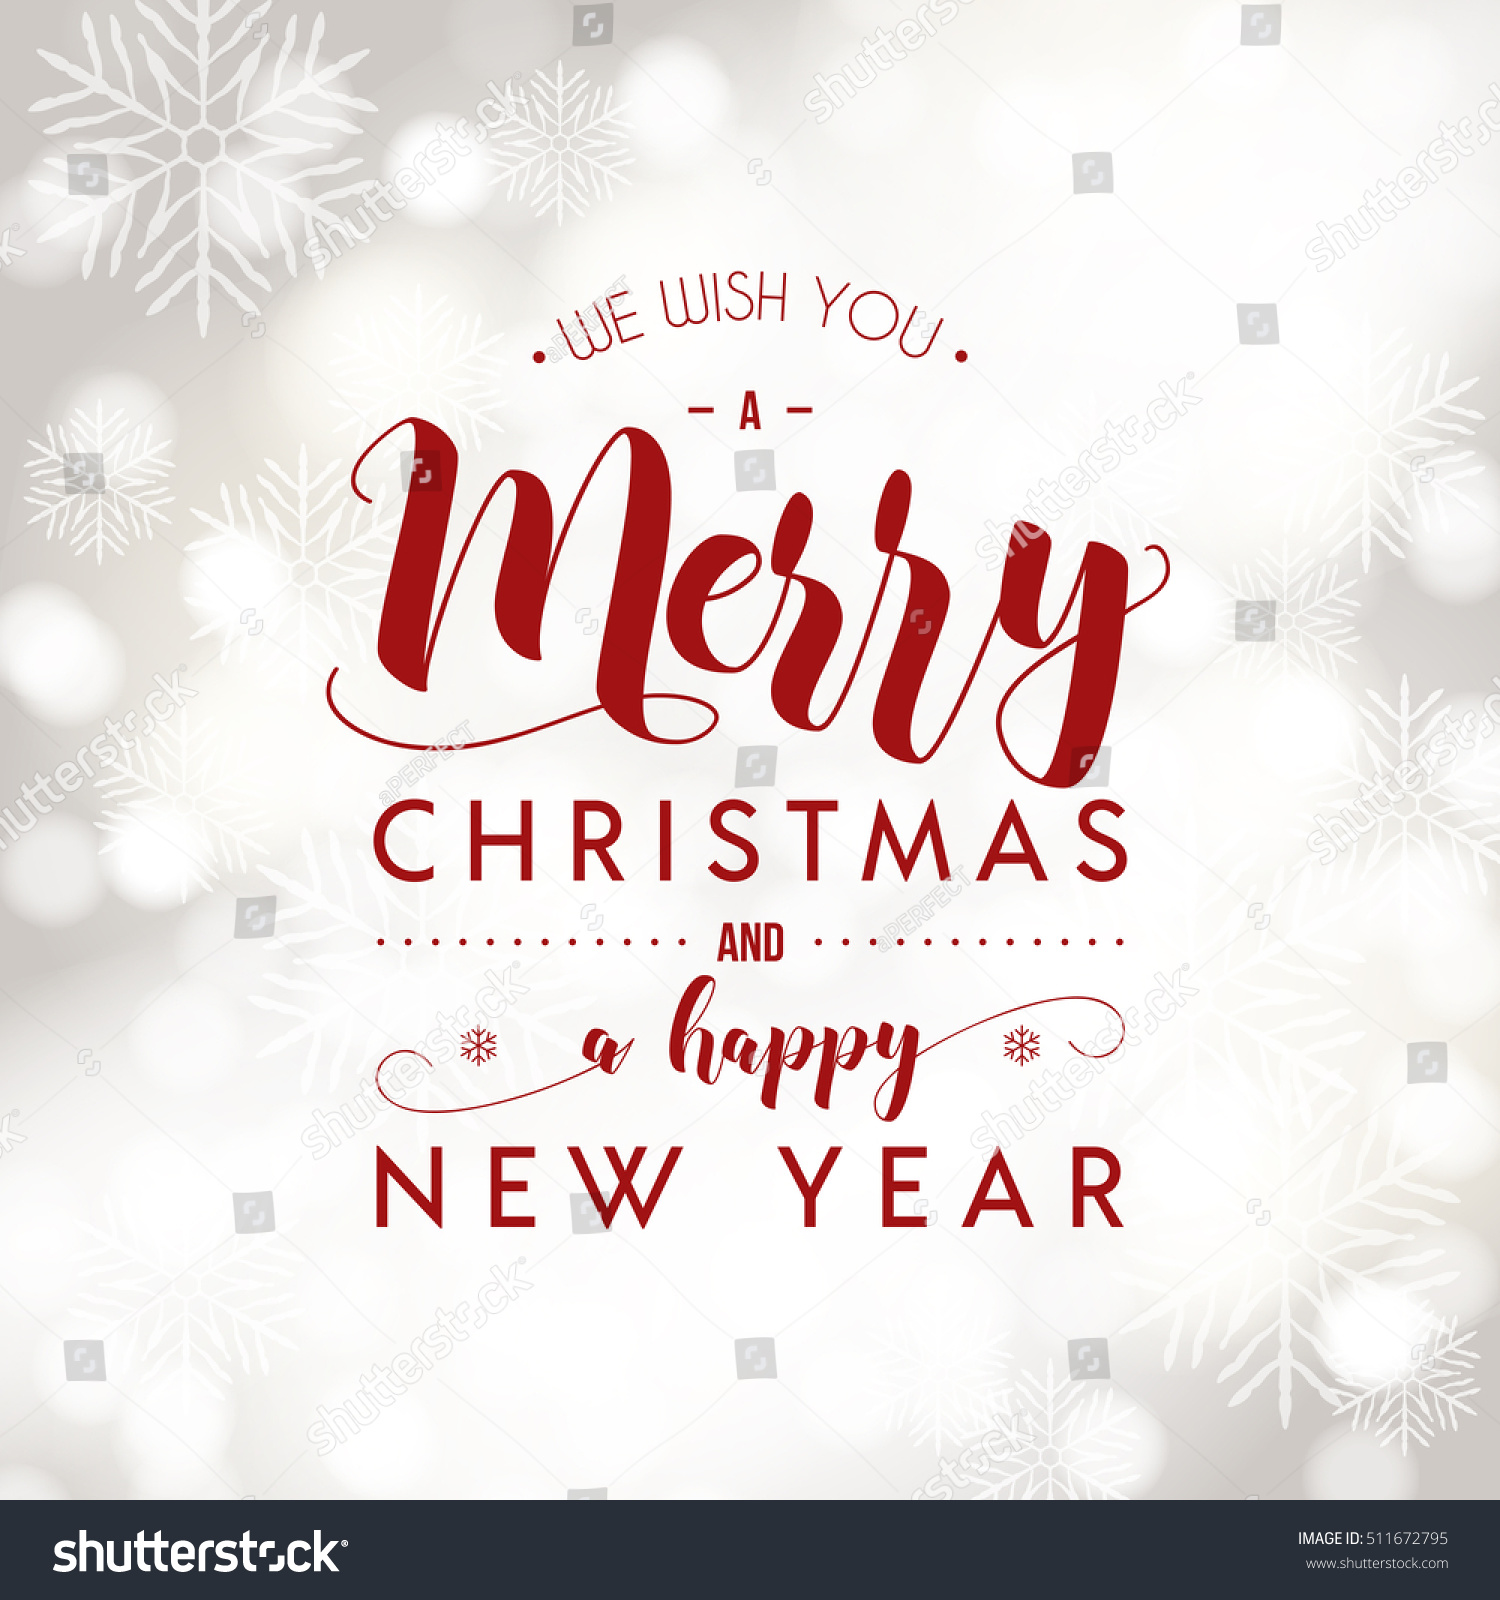 Merry Christmas Happy New Year Greeting Stock Vector